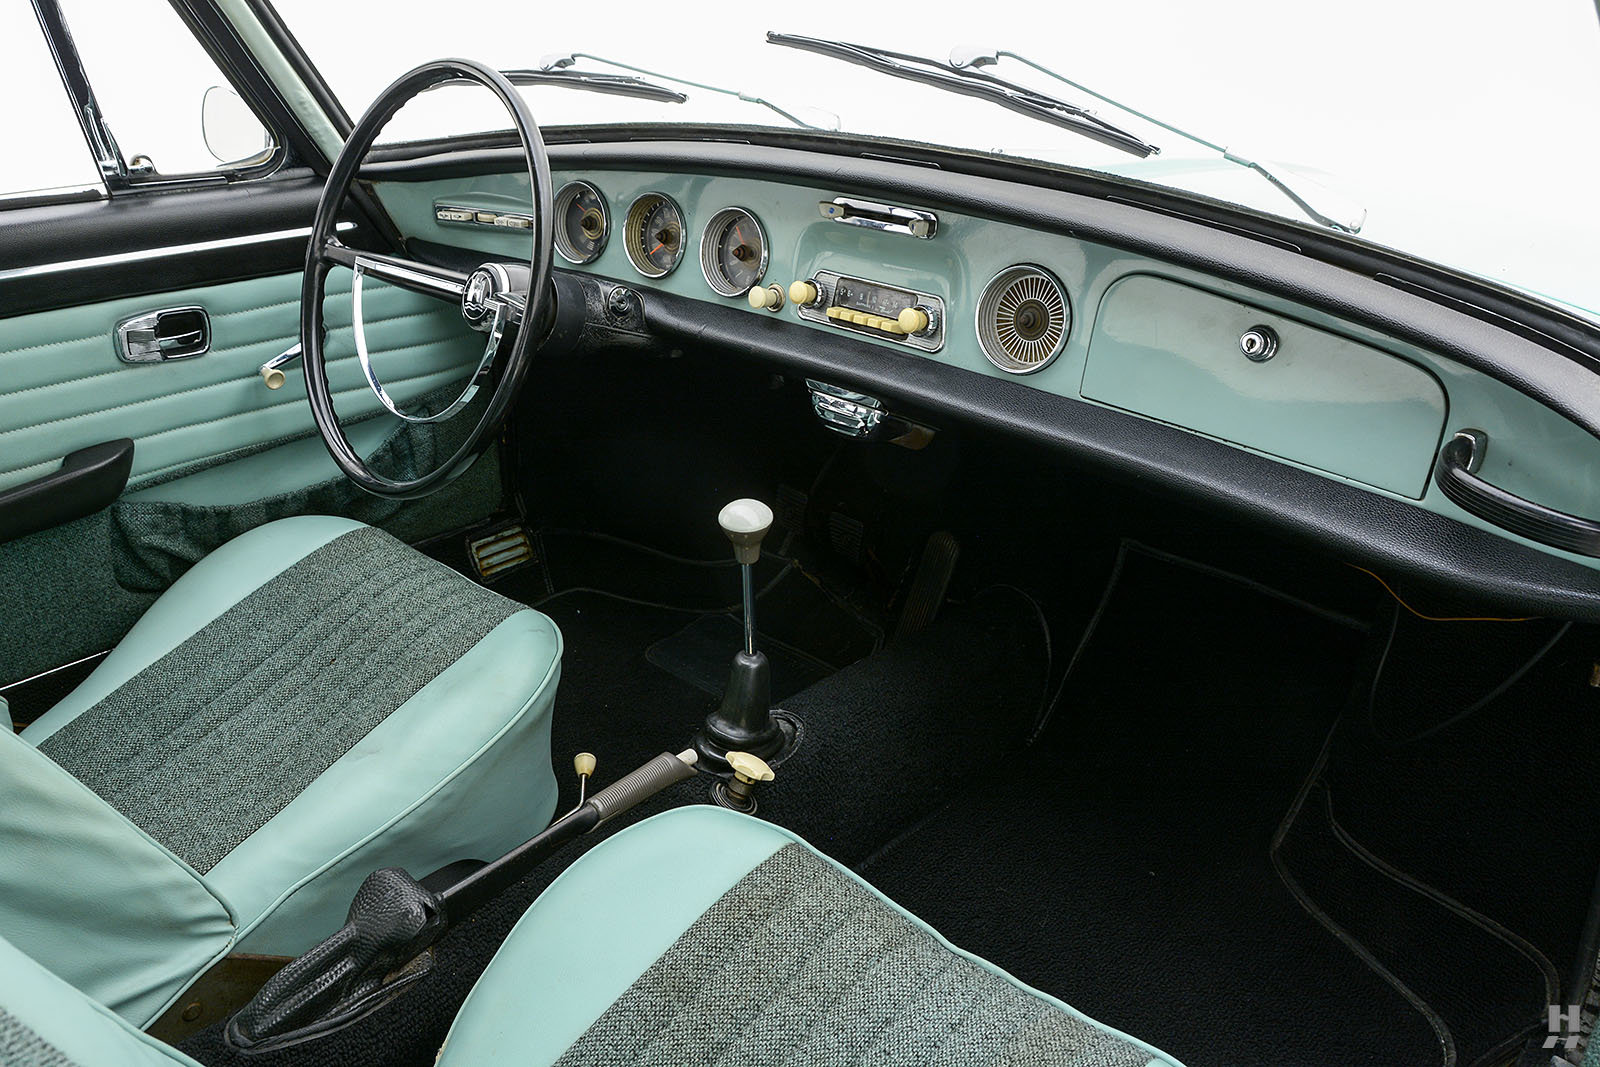 1963 Volkswagen Type 34 Karmann Ghia Coupe For Sale (picture 5 of 6)